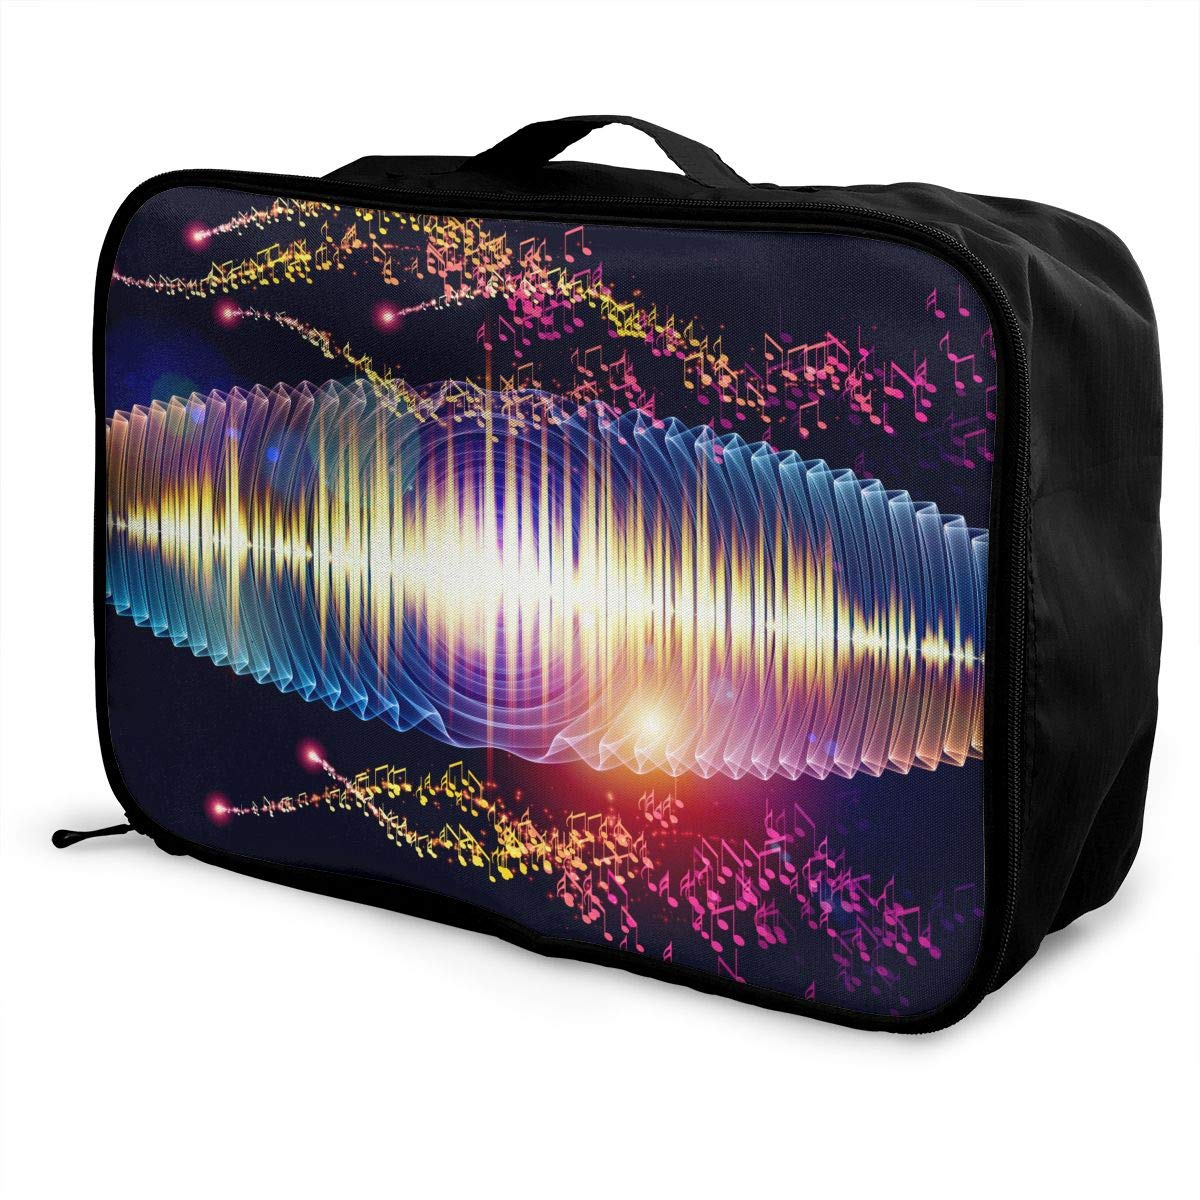 Travel Duffel Bag Waterproof Fashion Lightweight Large Capacity Portable Luggage Bag Colorful Music Notes Bling